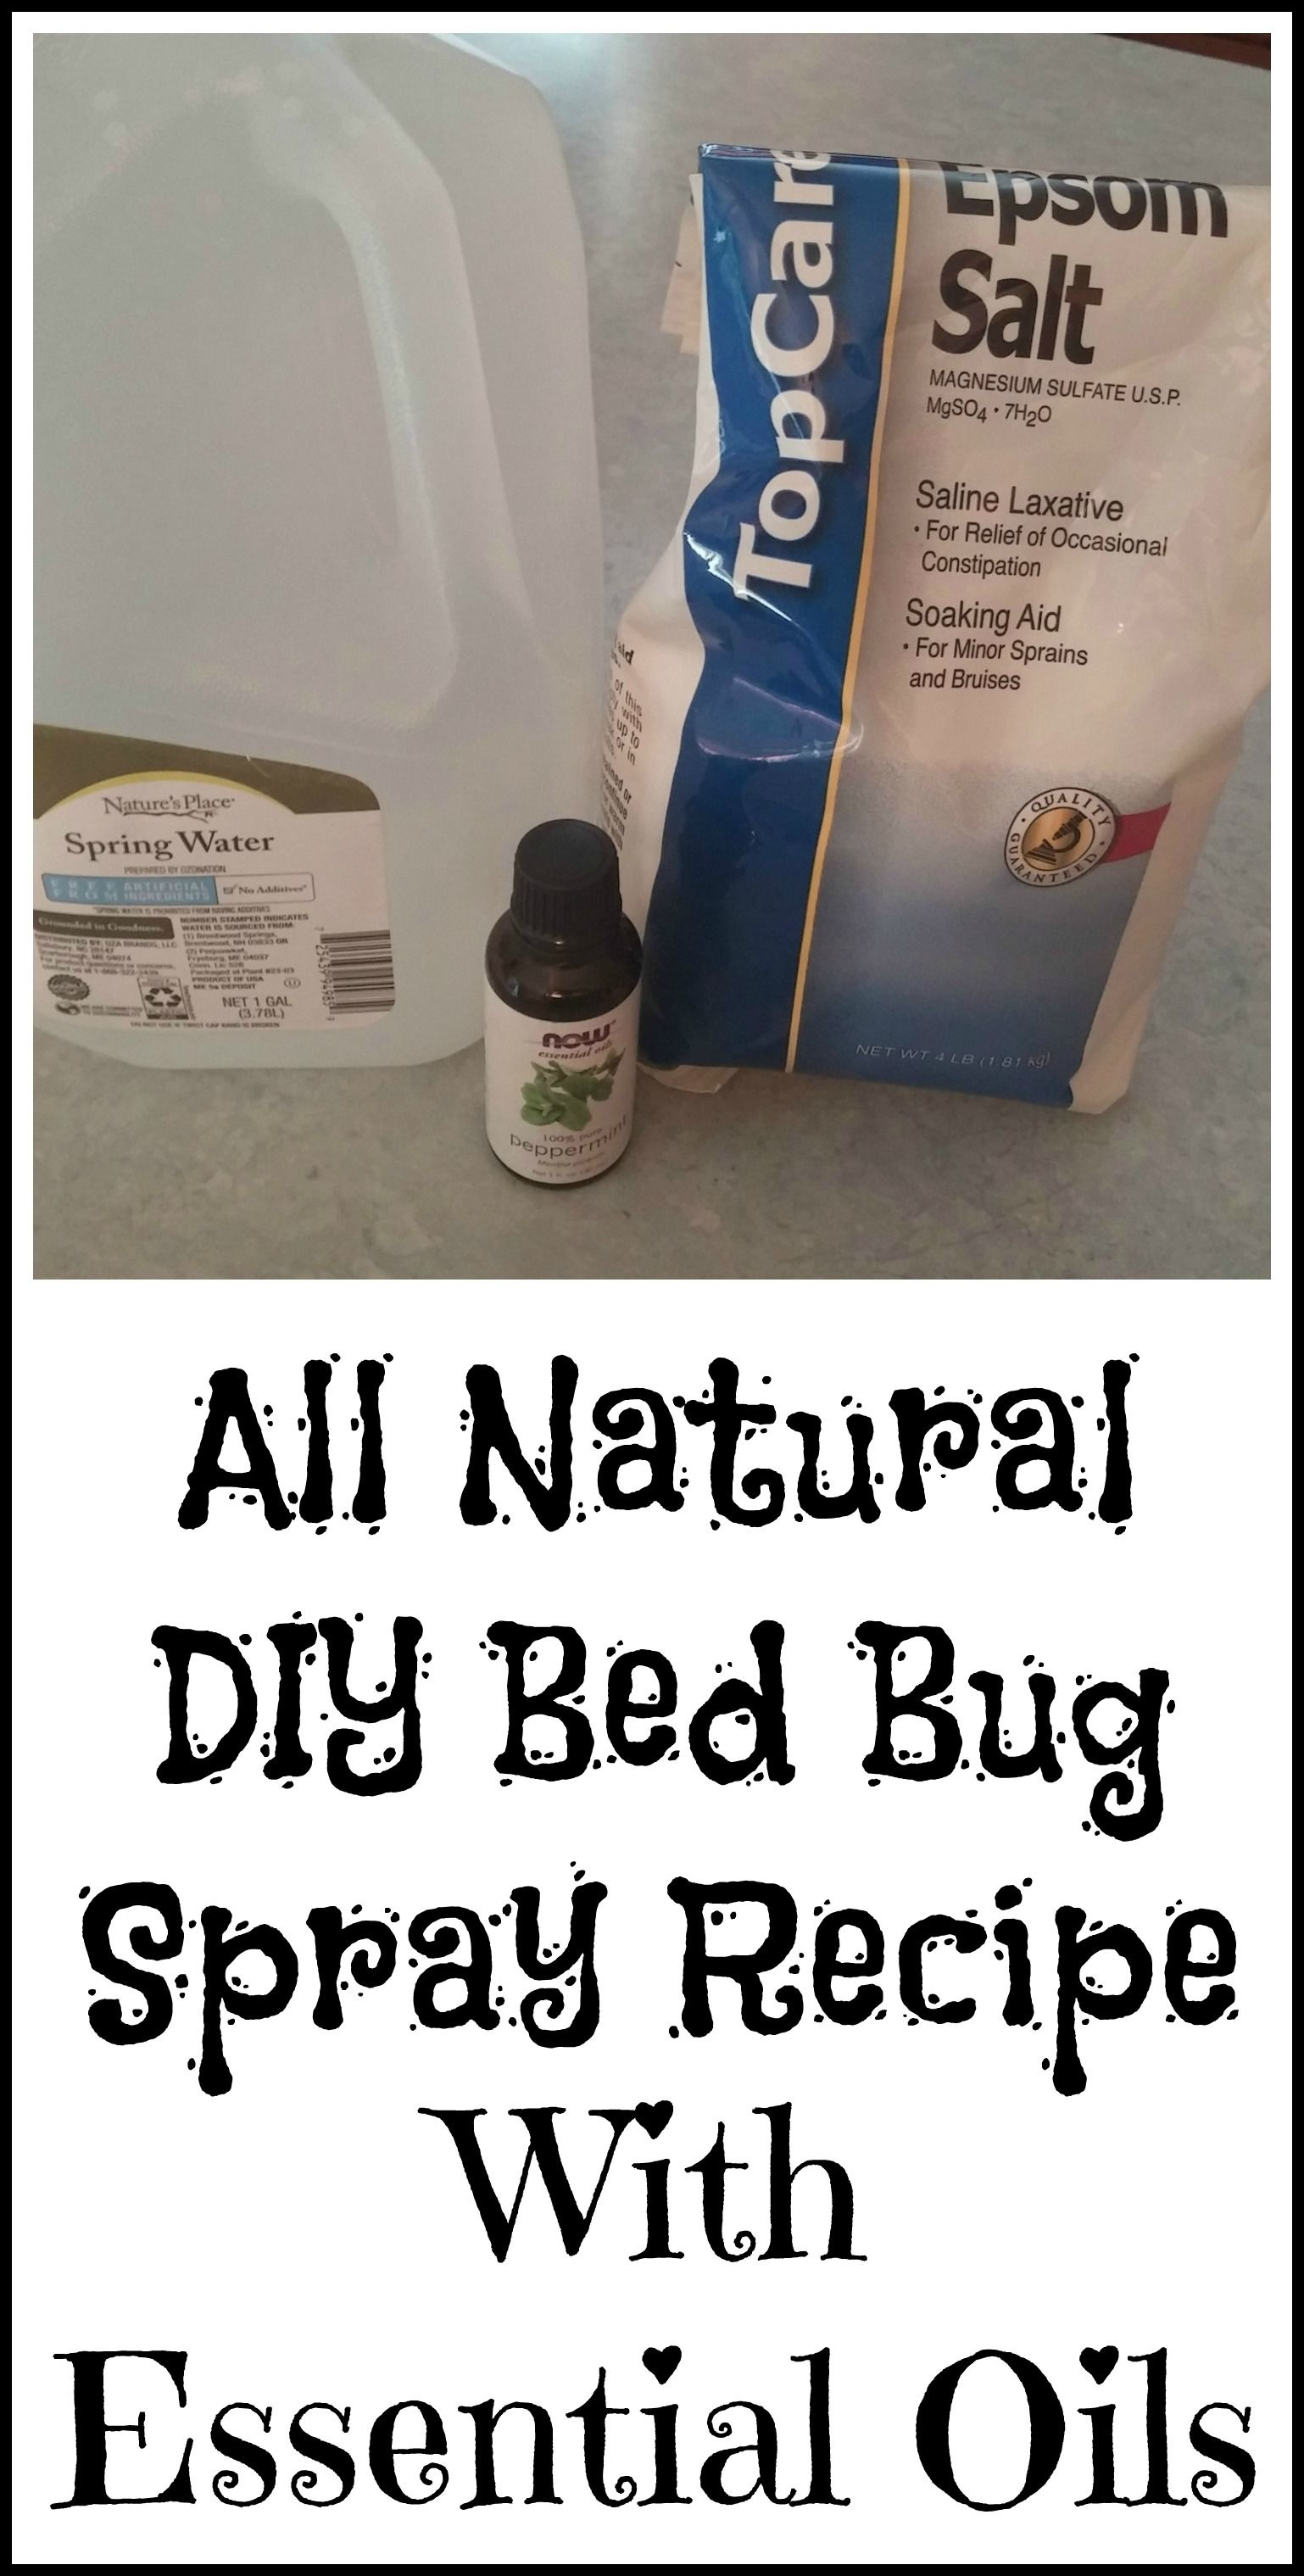 How to make all natural non toxic bed bug spray with essential oils and a few other ingredients.